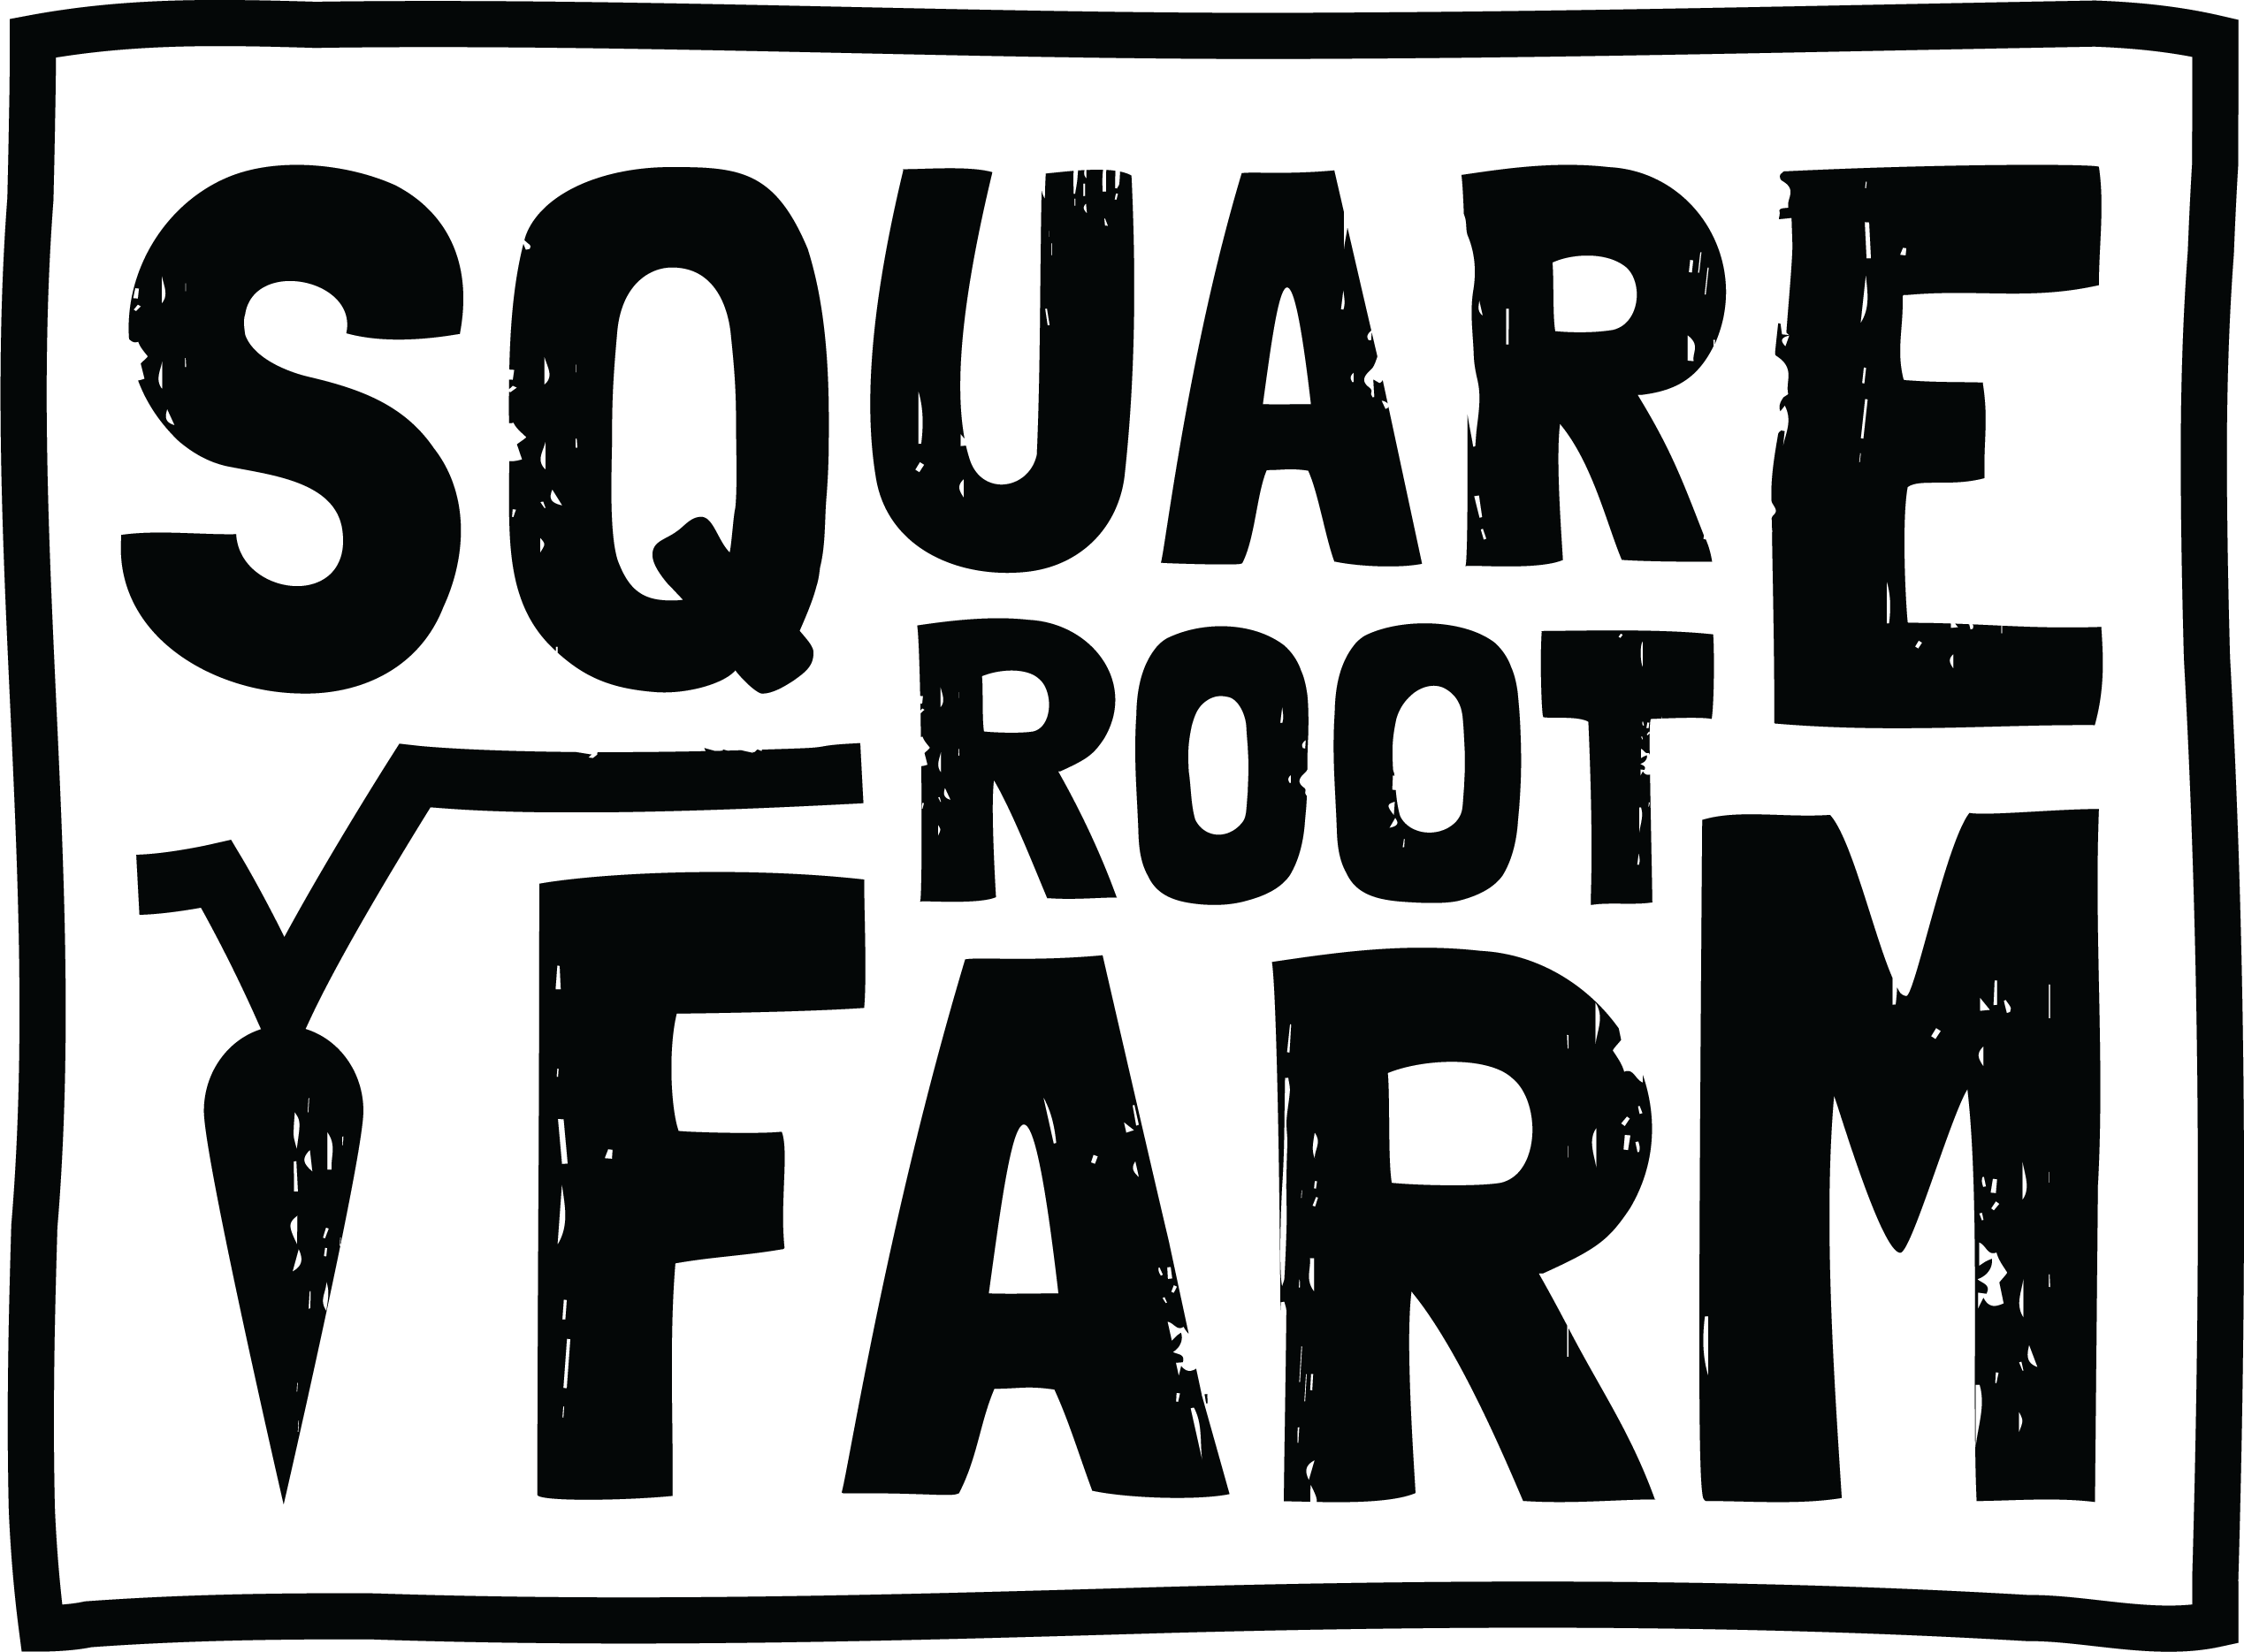 Vegetable Farm seeks simple BUT AWESOME text logo